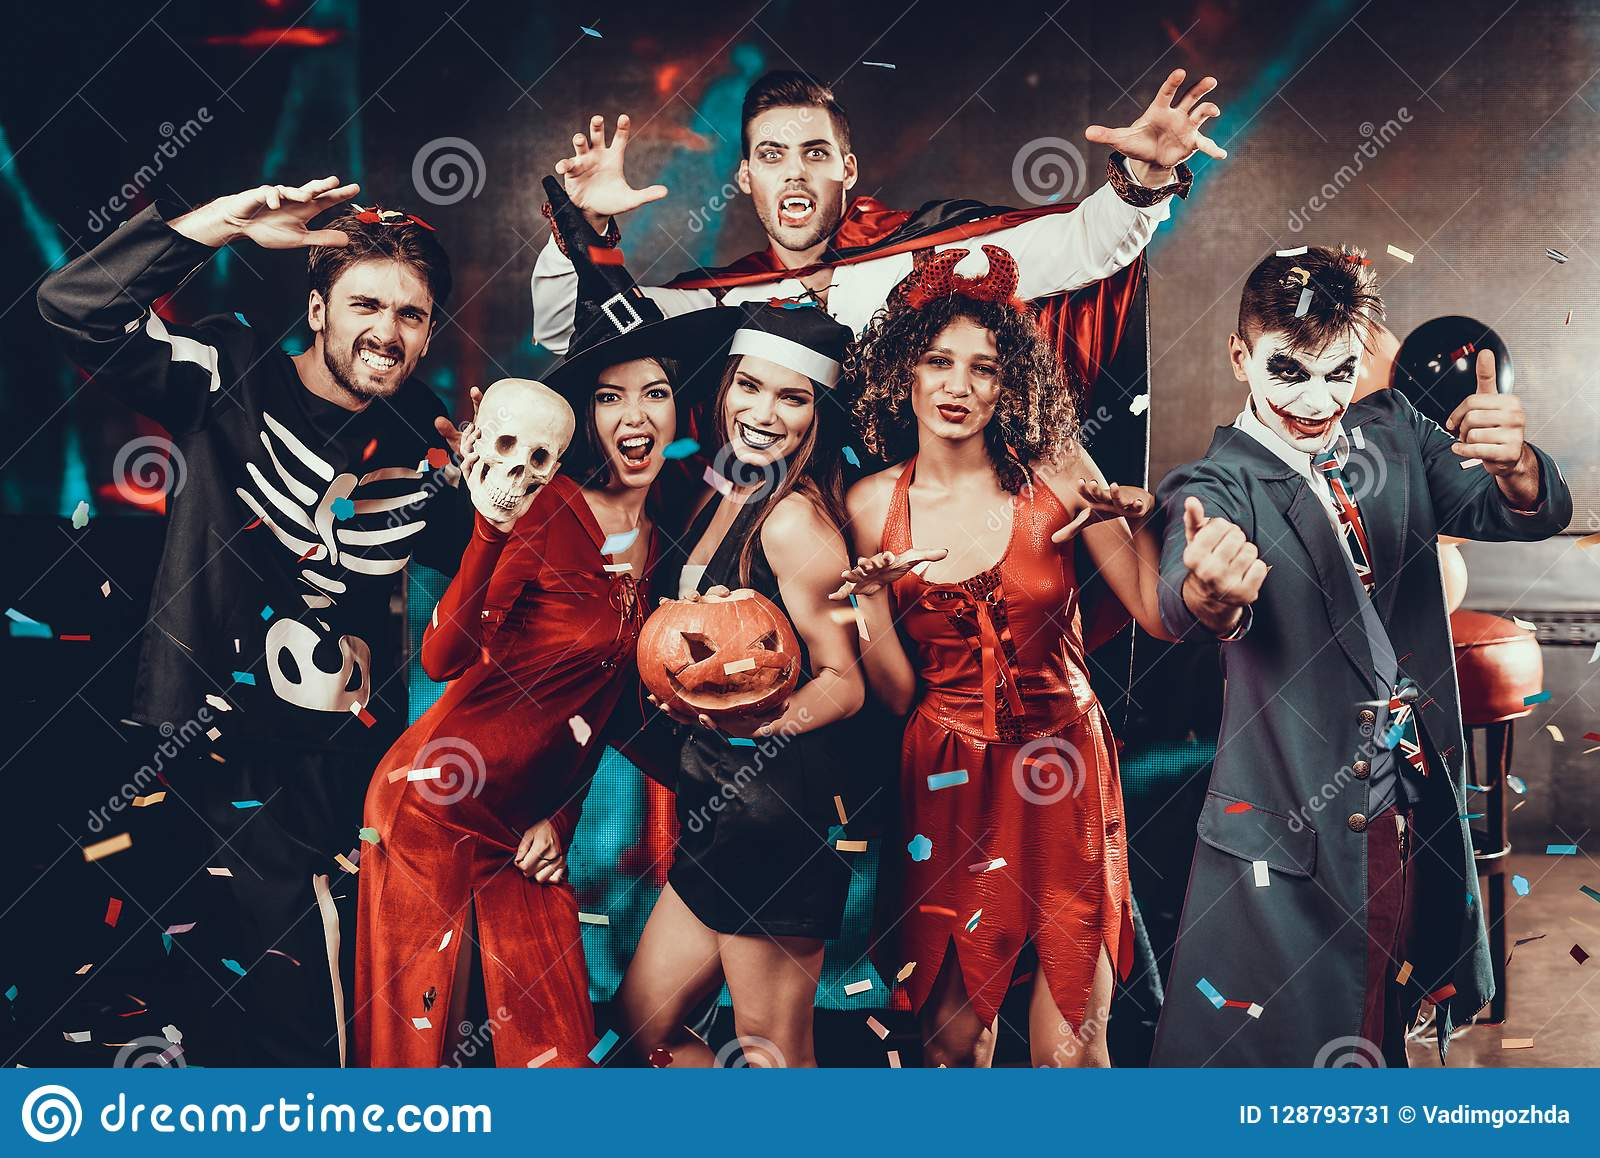 Halloween Group Costumes Scary.Portrait Of Young Smiling People In Scary Costumes Stock